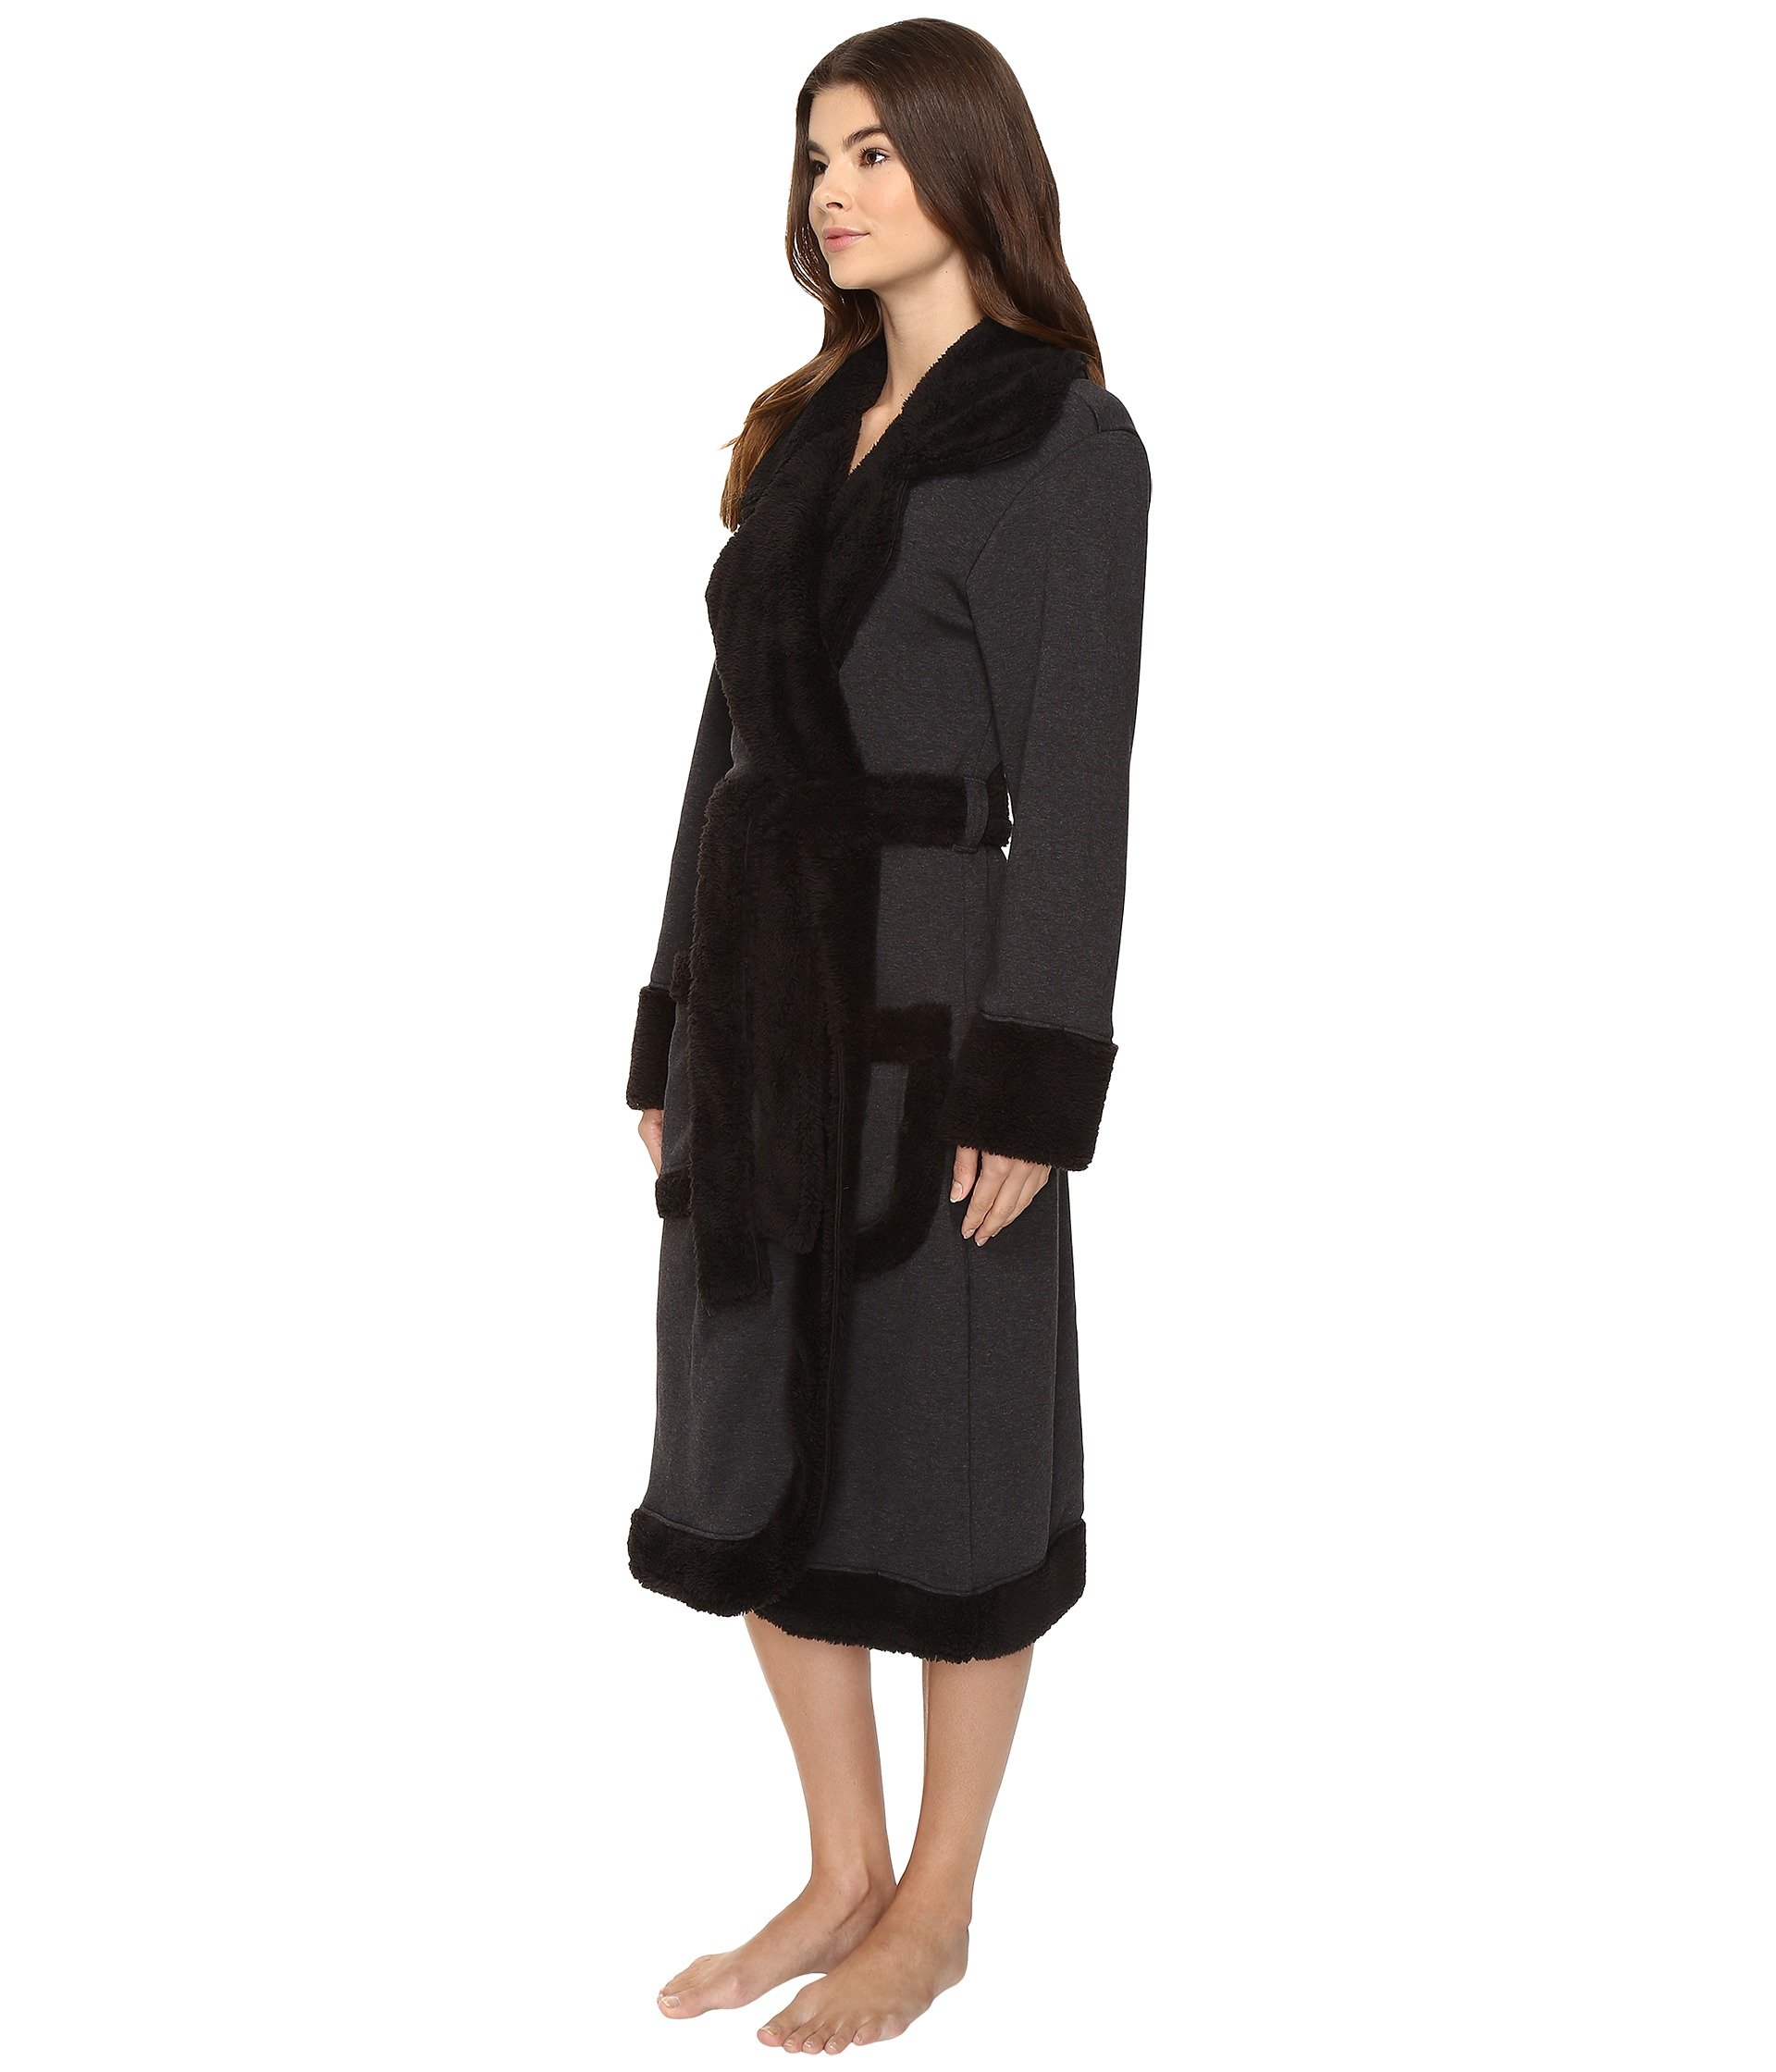 ugg duffield deluxe robe black bear heather. Black Bedroom Furniture Sets. Home Design Ideas